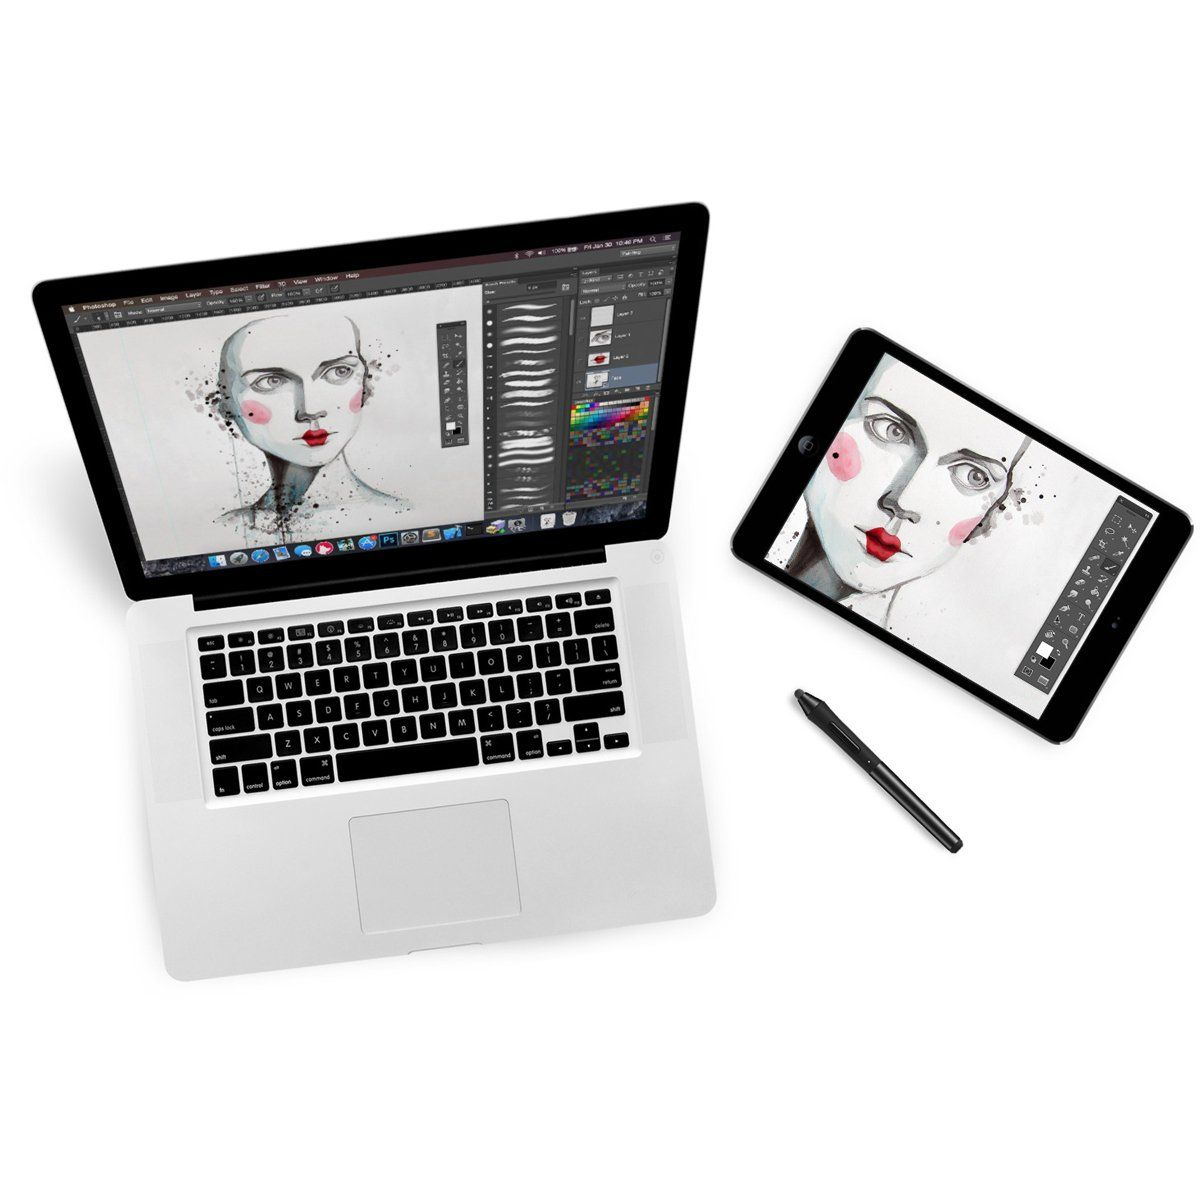 The Tech Art Download App For Pc Gaming: The 13 Best IPad Apps For Designers